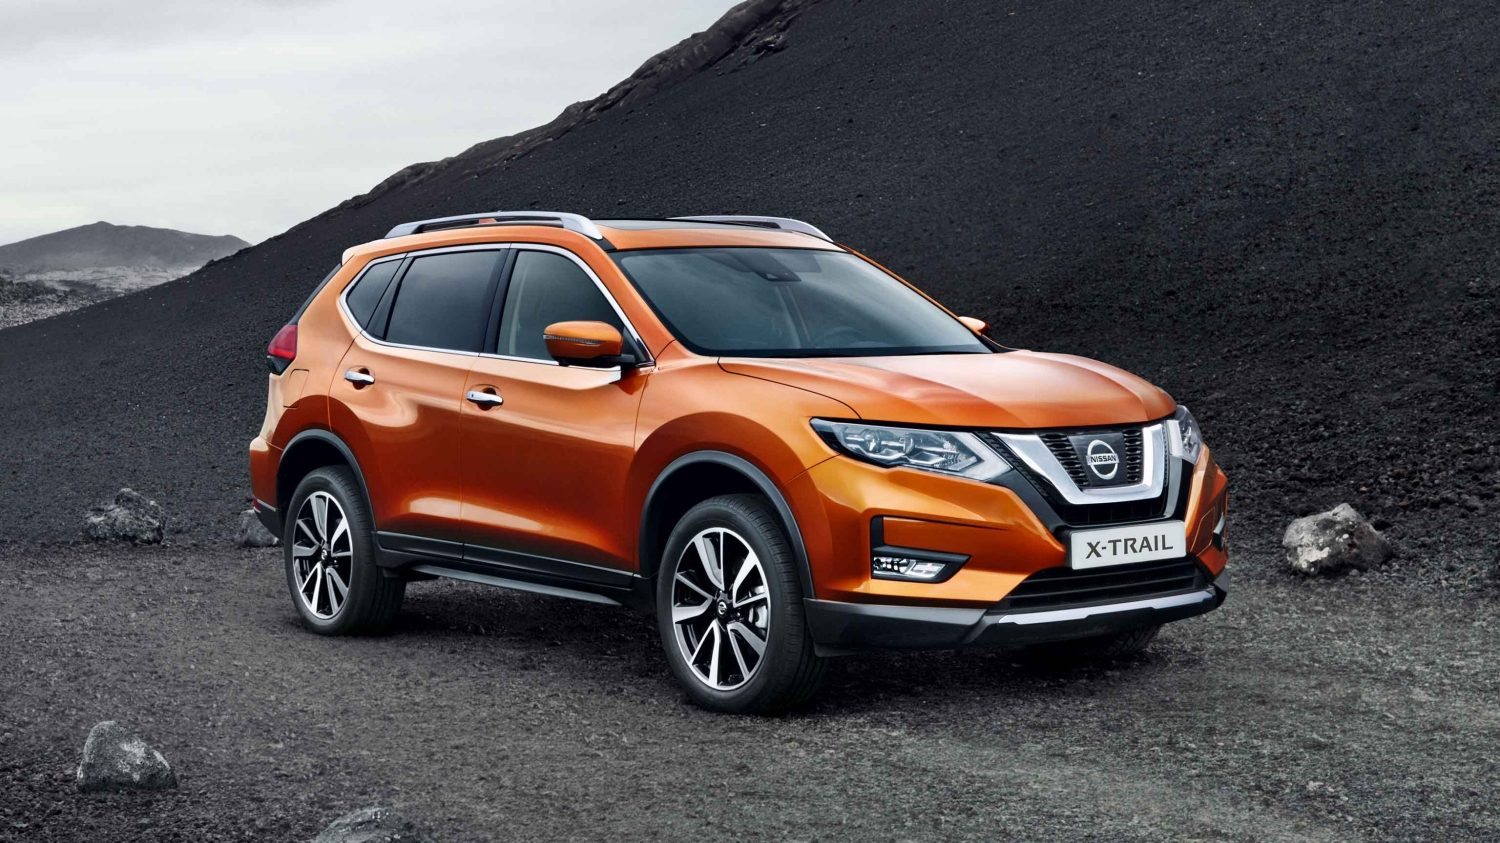 Nissan X-Trail 7 seats